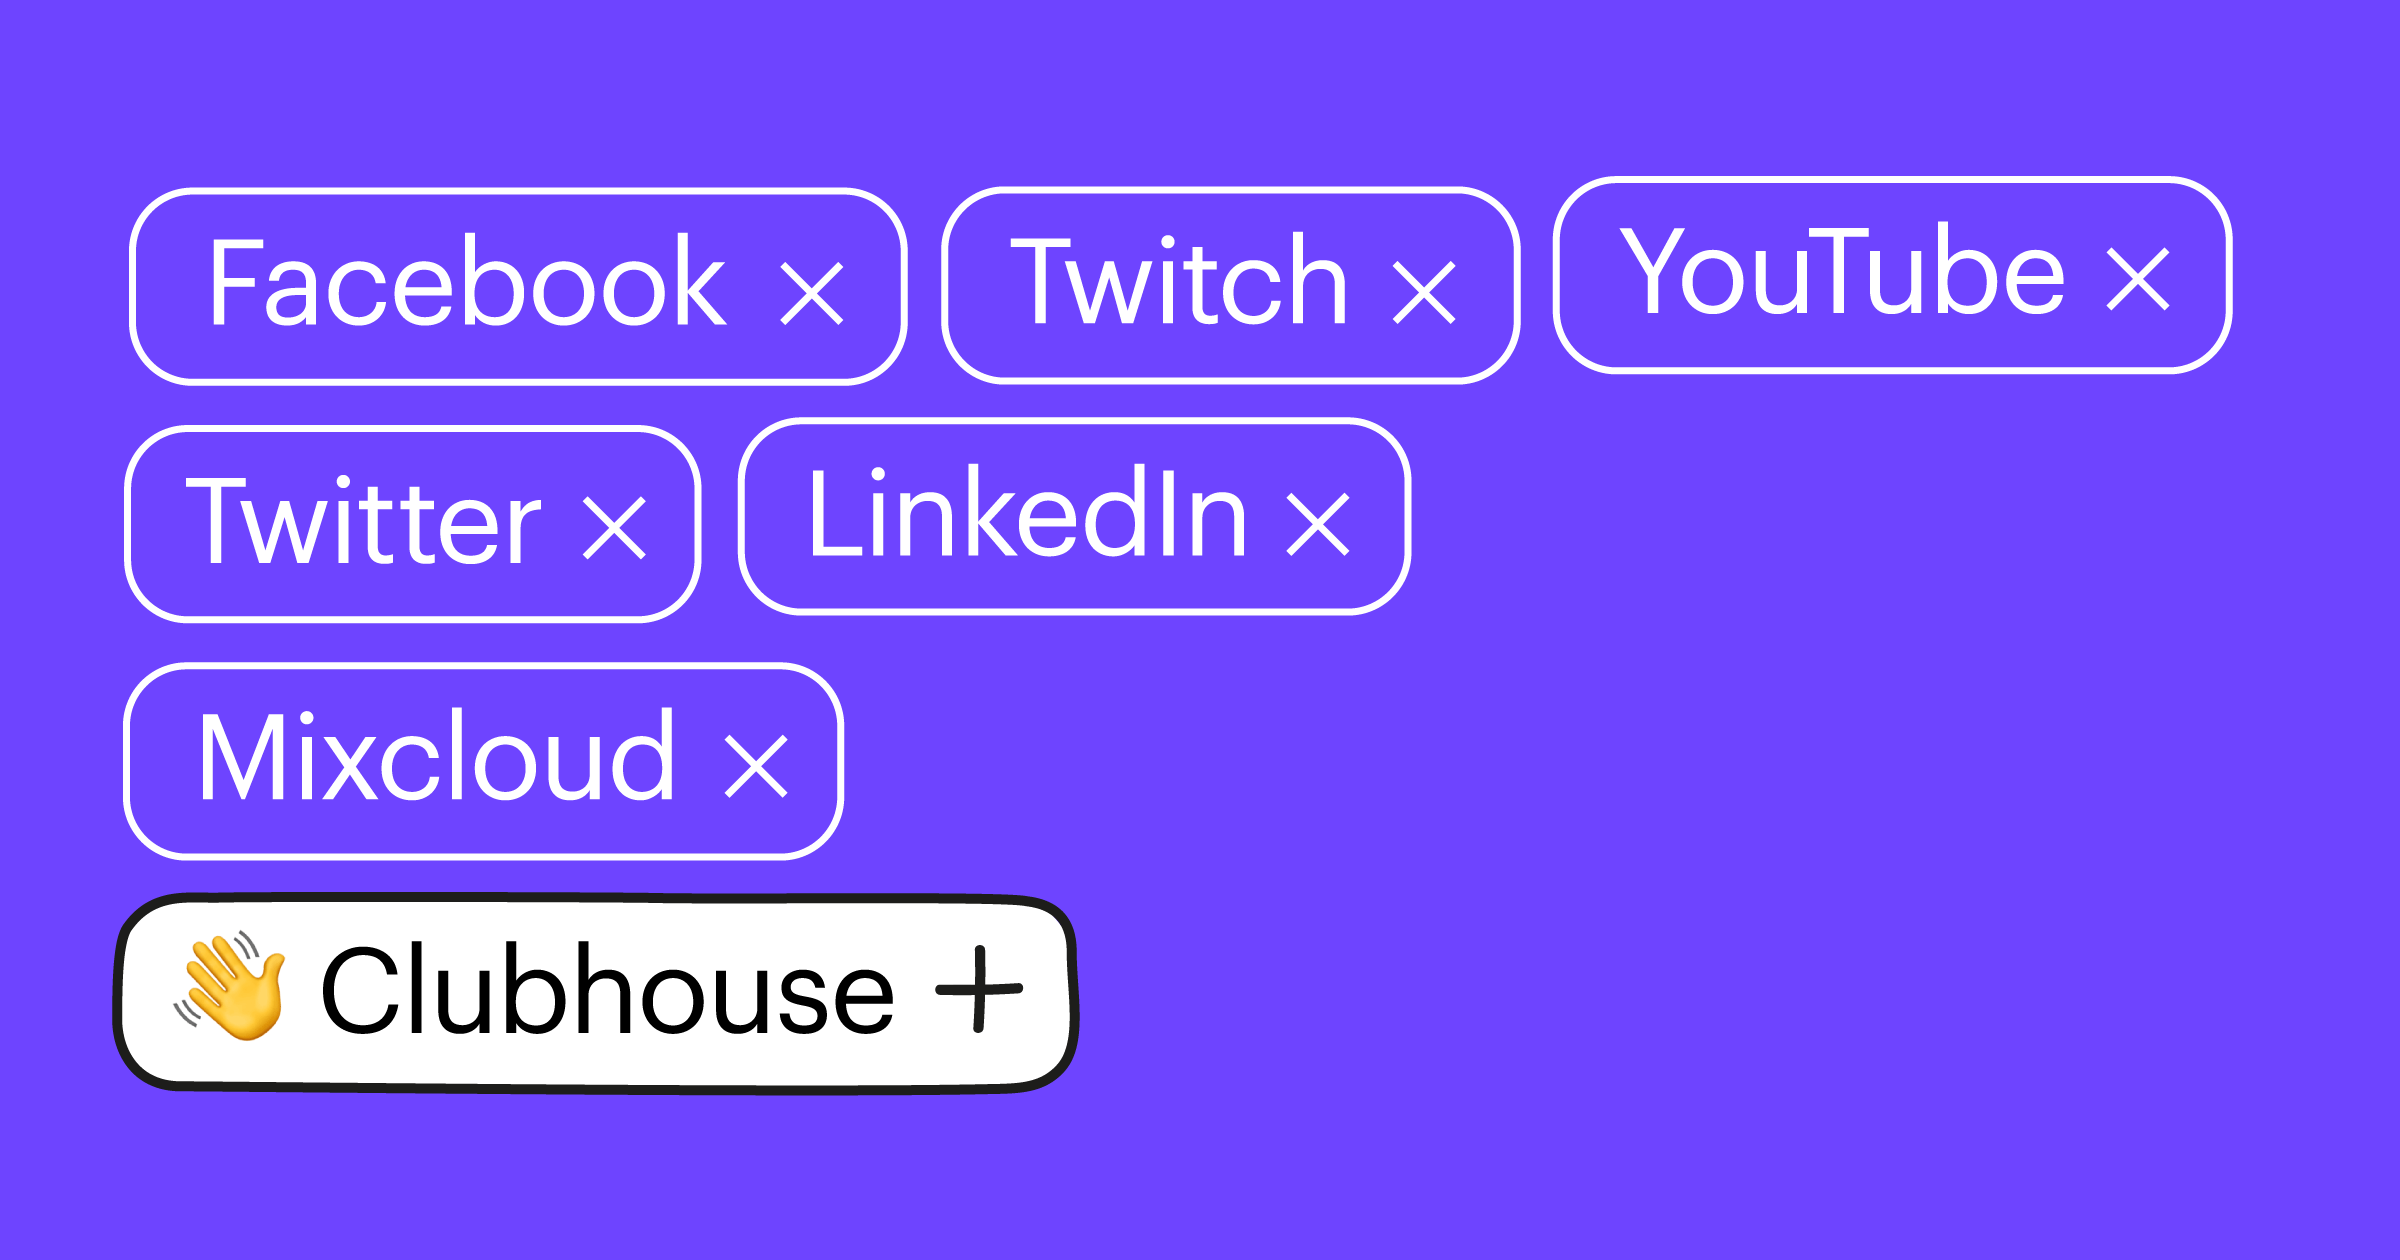 What is Clubhouse and how to use it